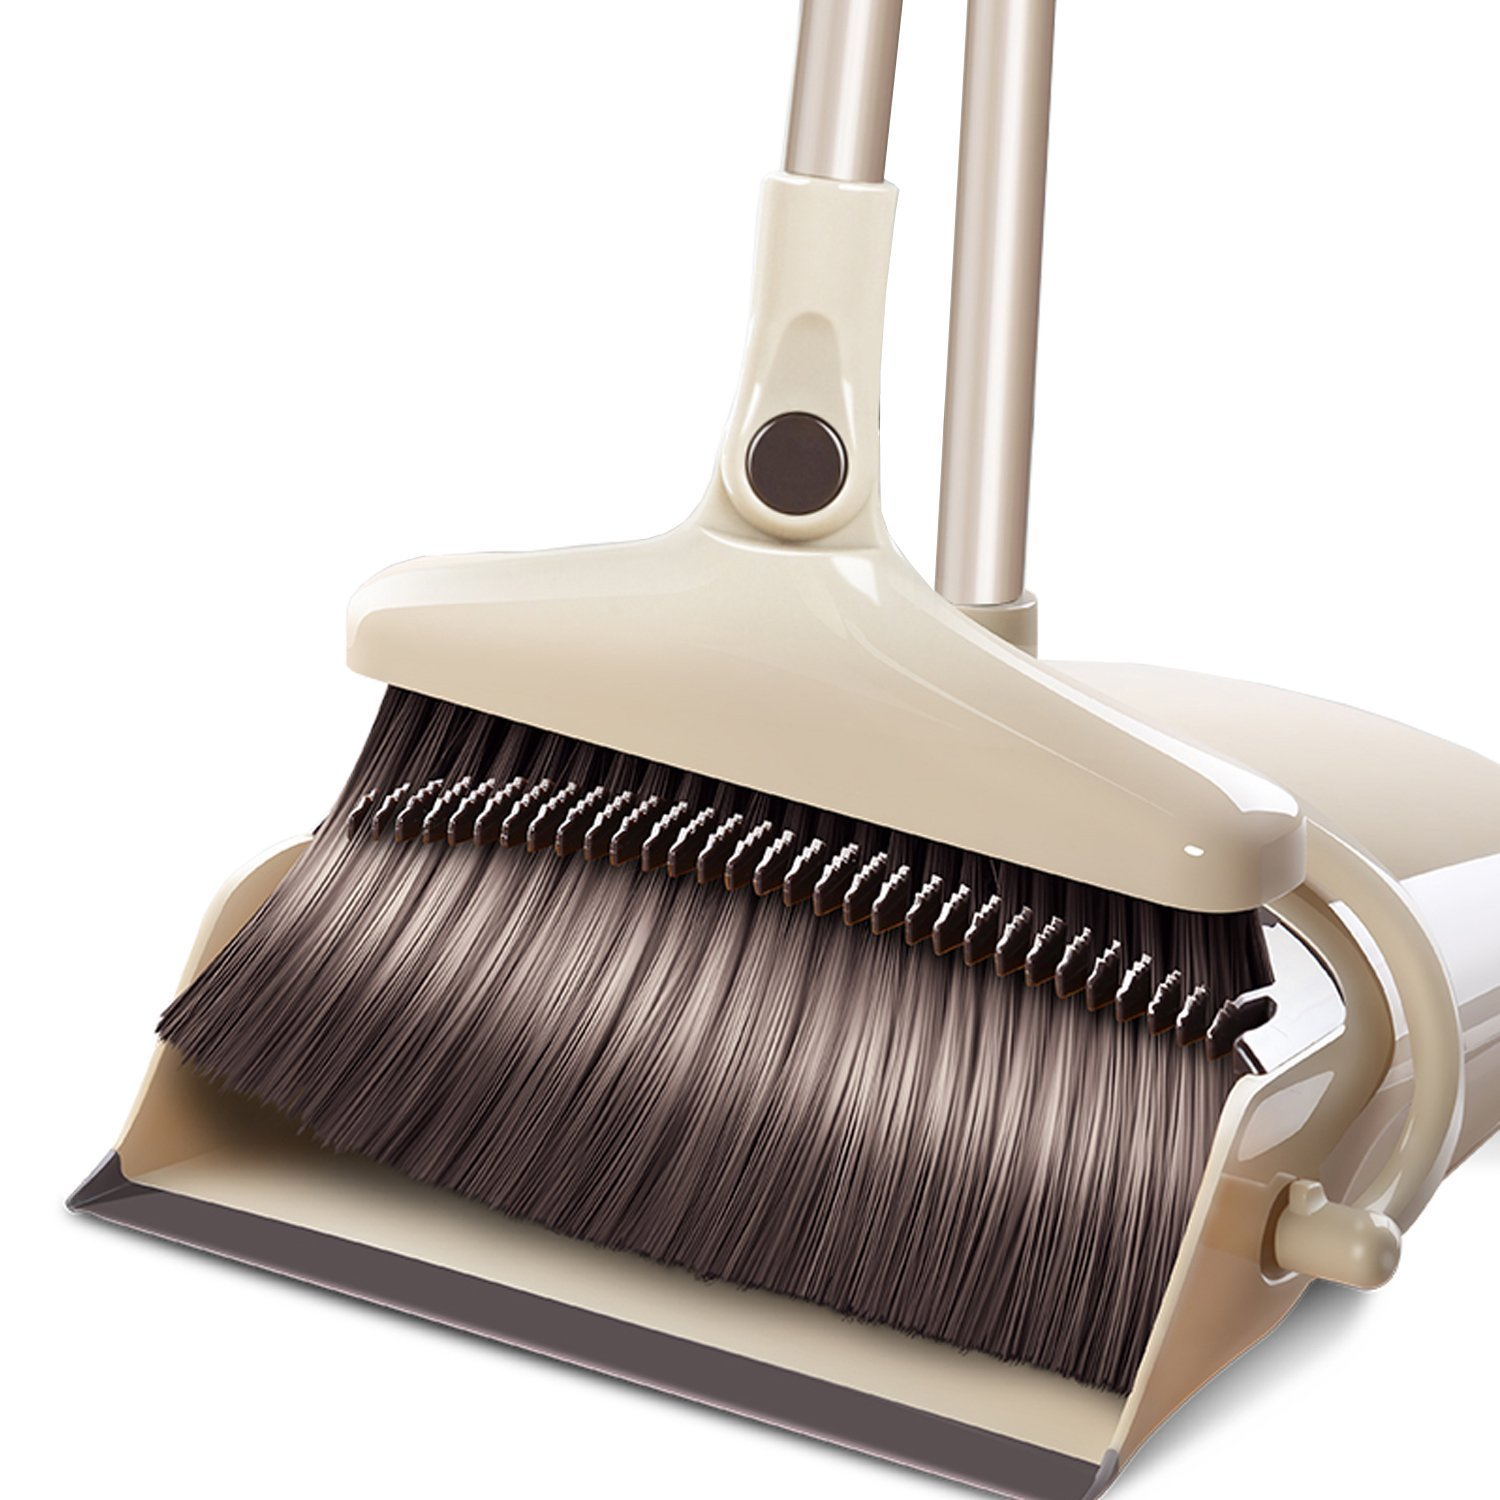 Benchmart Upgraded 180 Rotary Broom and Dustpan Set with Extra Long Handle, Extendable House Sweep with Upright Stand up Dustpan for Home Kitchen Room Office Lobby Floor Cleaning